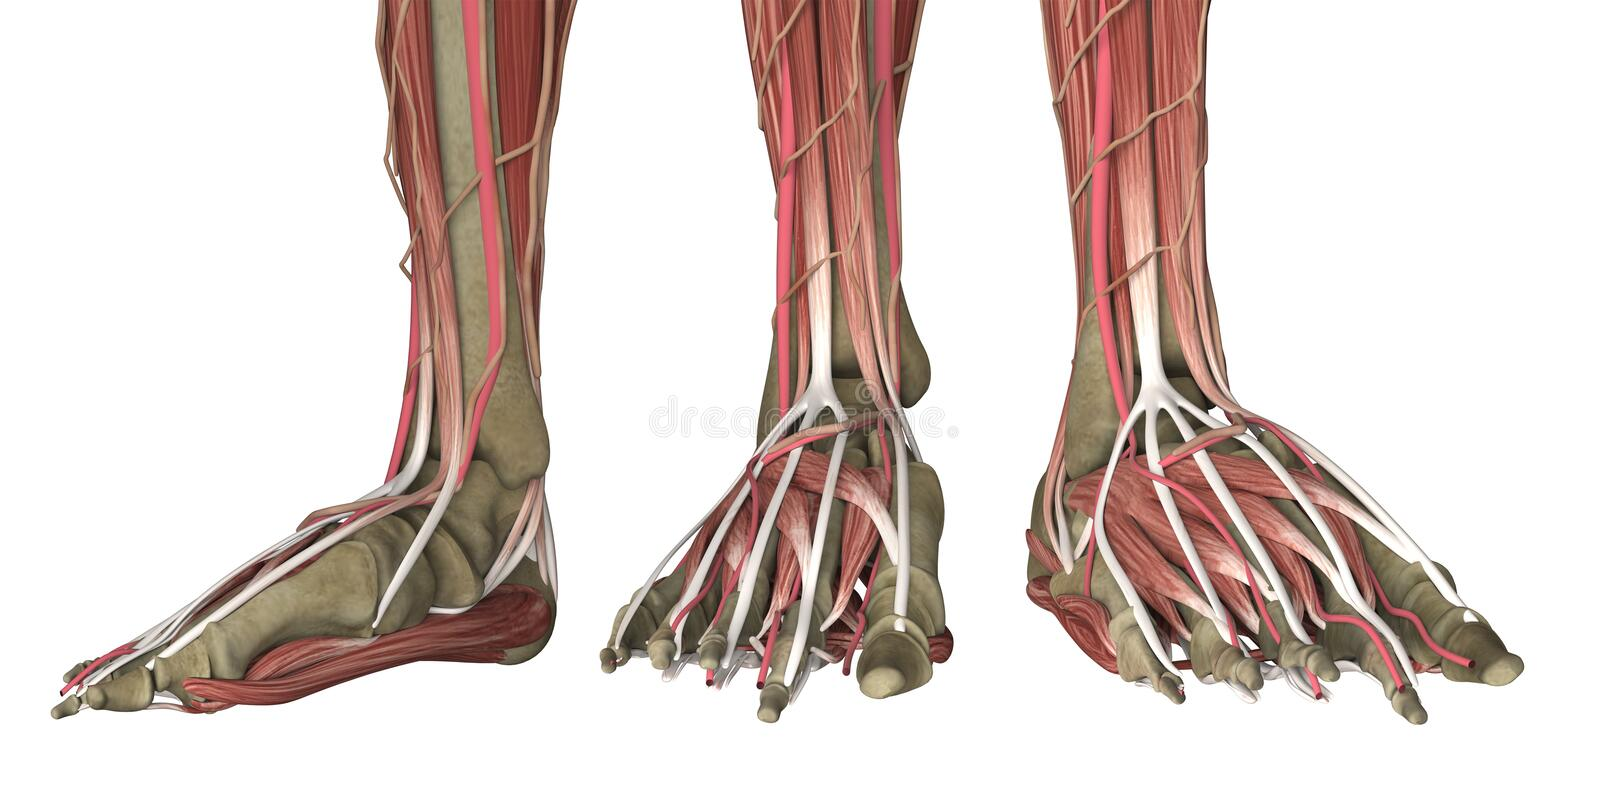 Human foot anatomy skinless. Isolated on white. 3d rendering royalty free stock photos